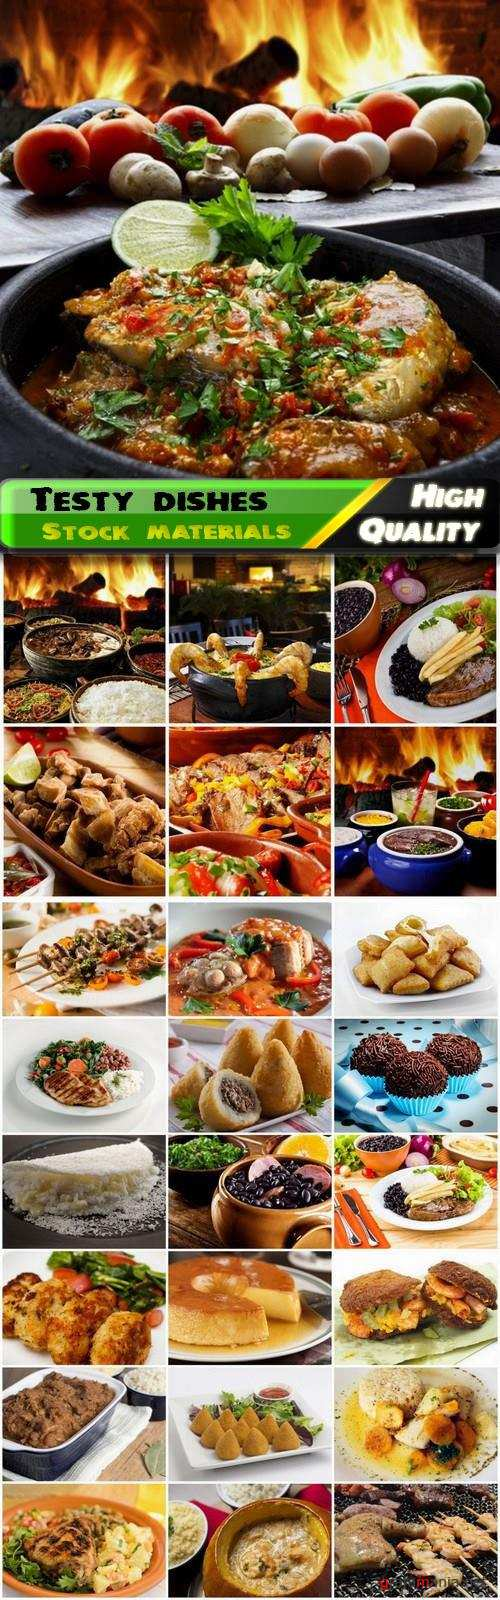 Tasty Indian and Brazilian dishes food 25 HQ Jpg